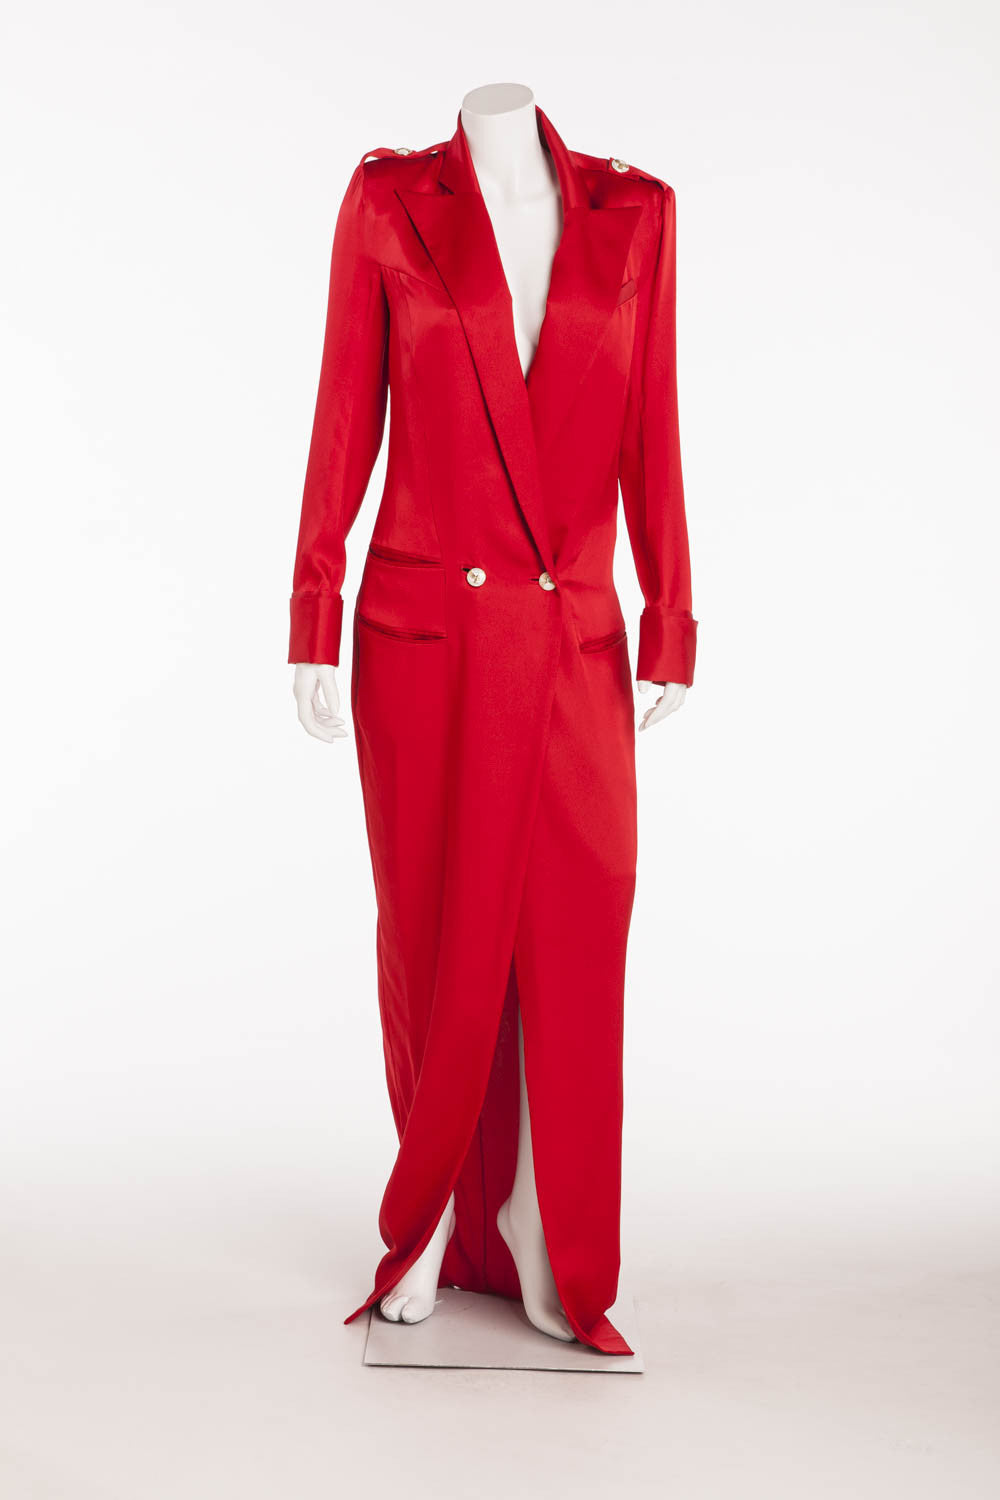 Balmain - As Seen on Blake Lively - Brand New Red Long Sleeve Silk Coat Dress - FR 42